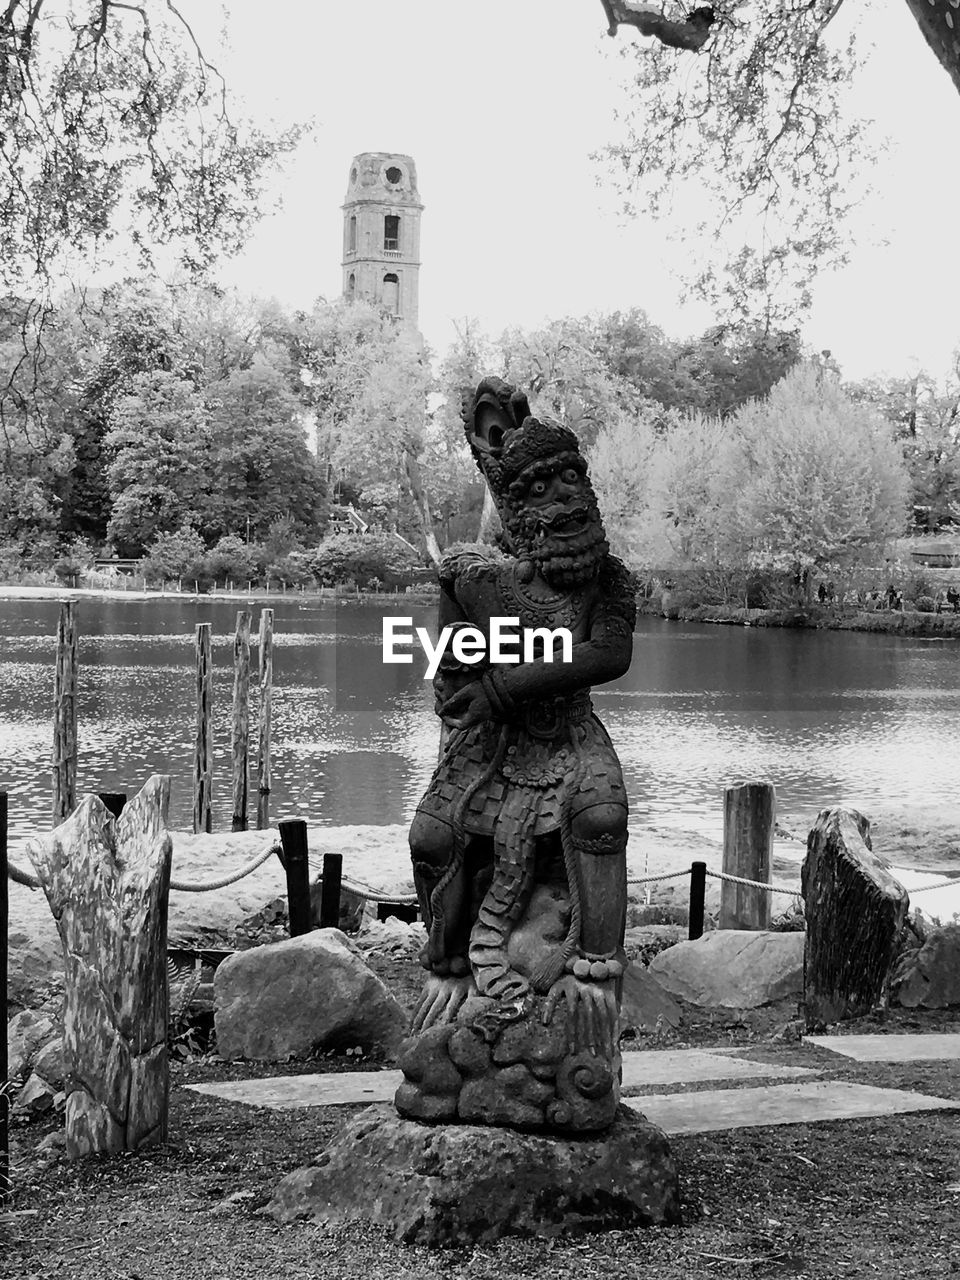 Old sculpture by river during sunny day